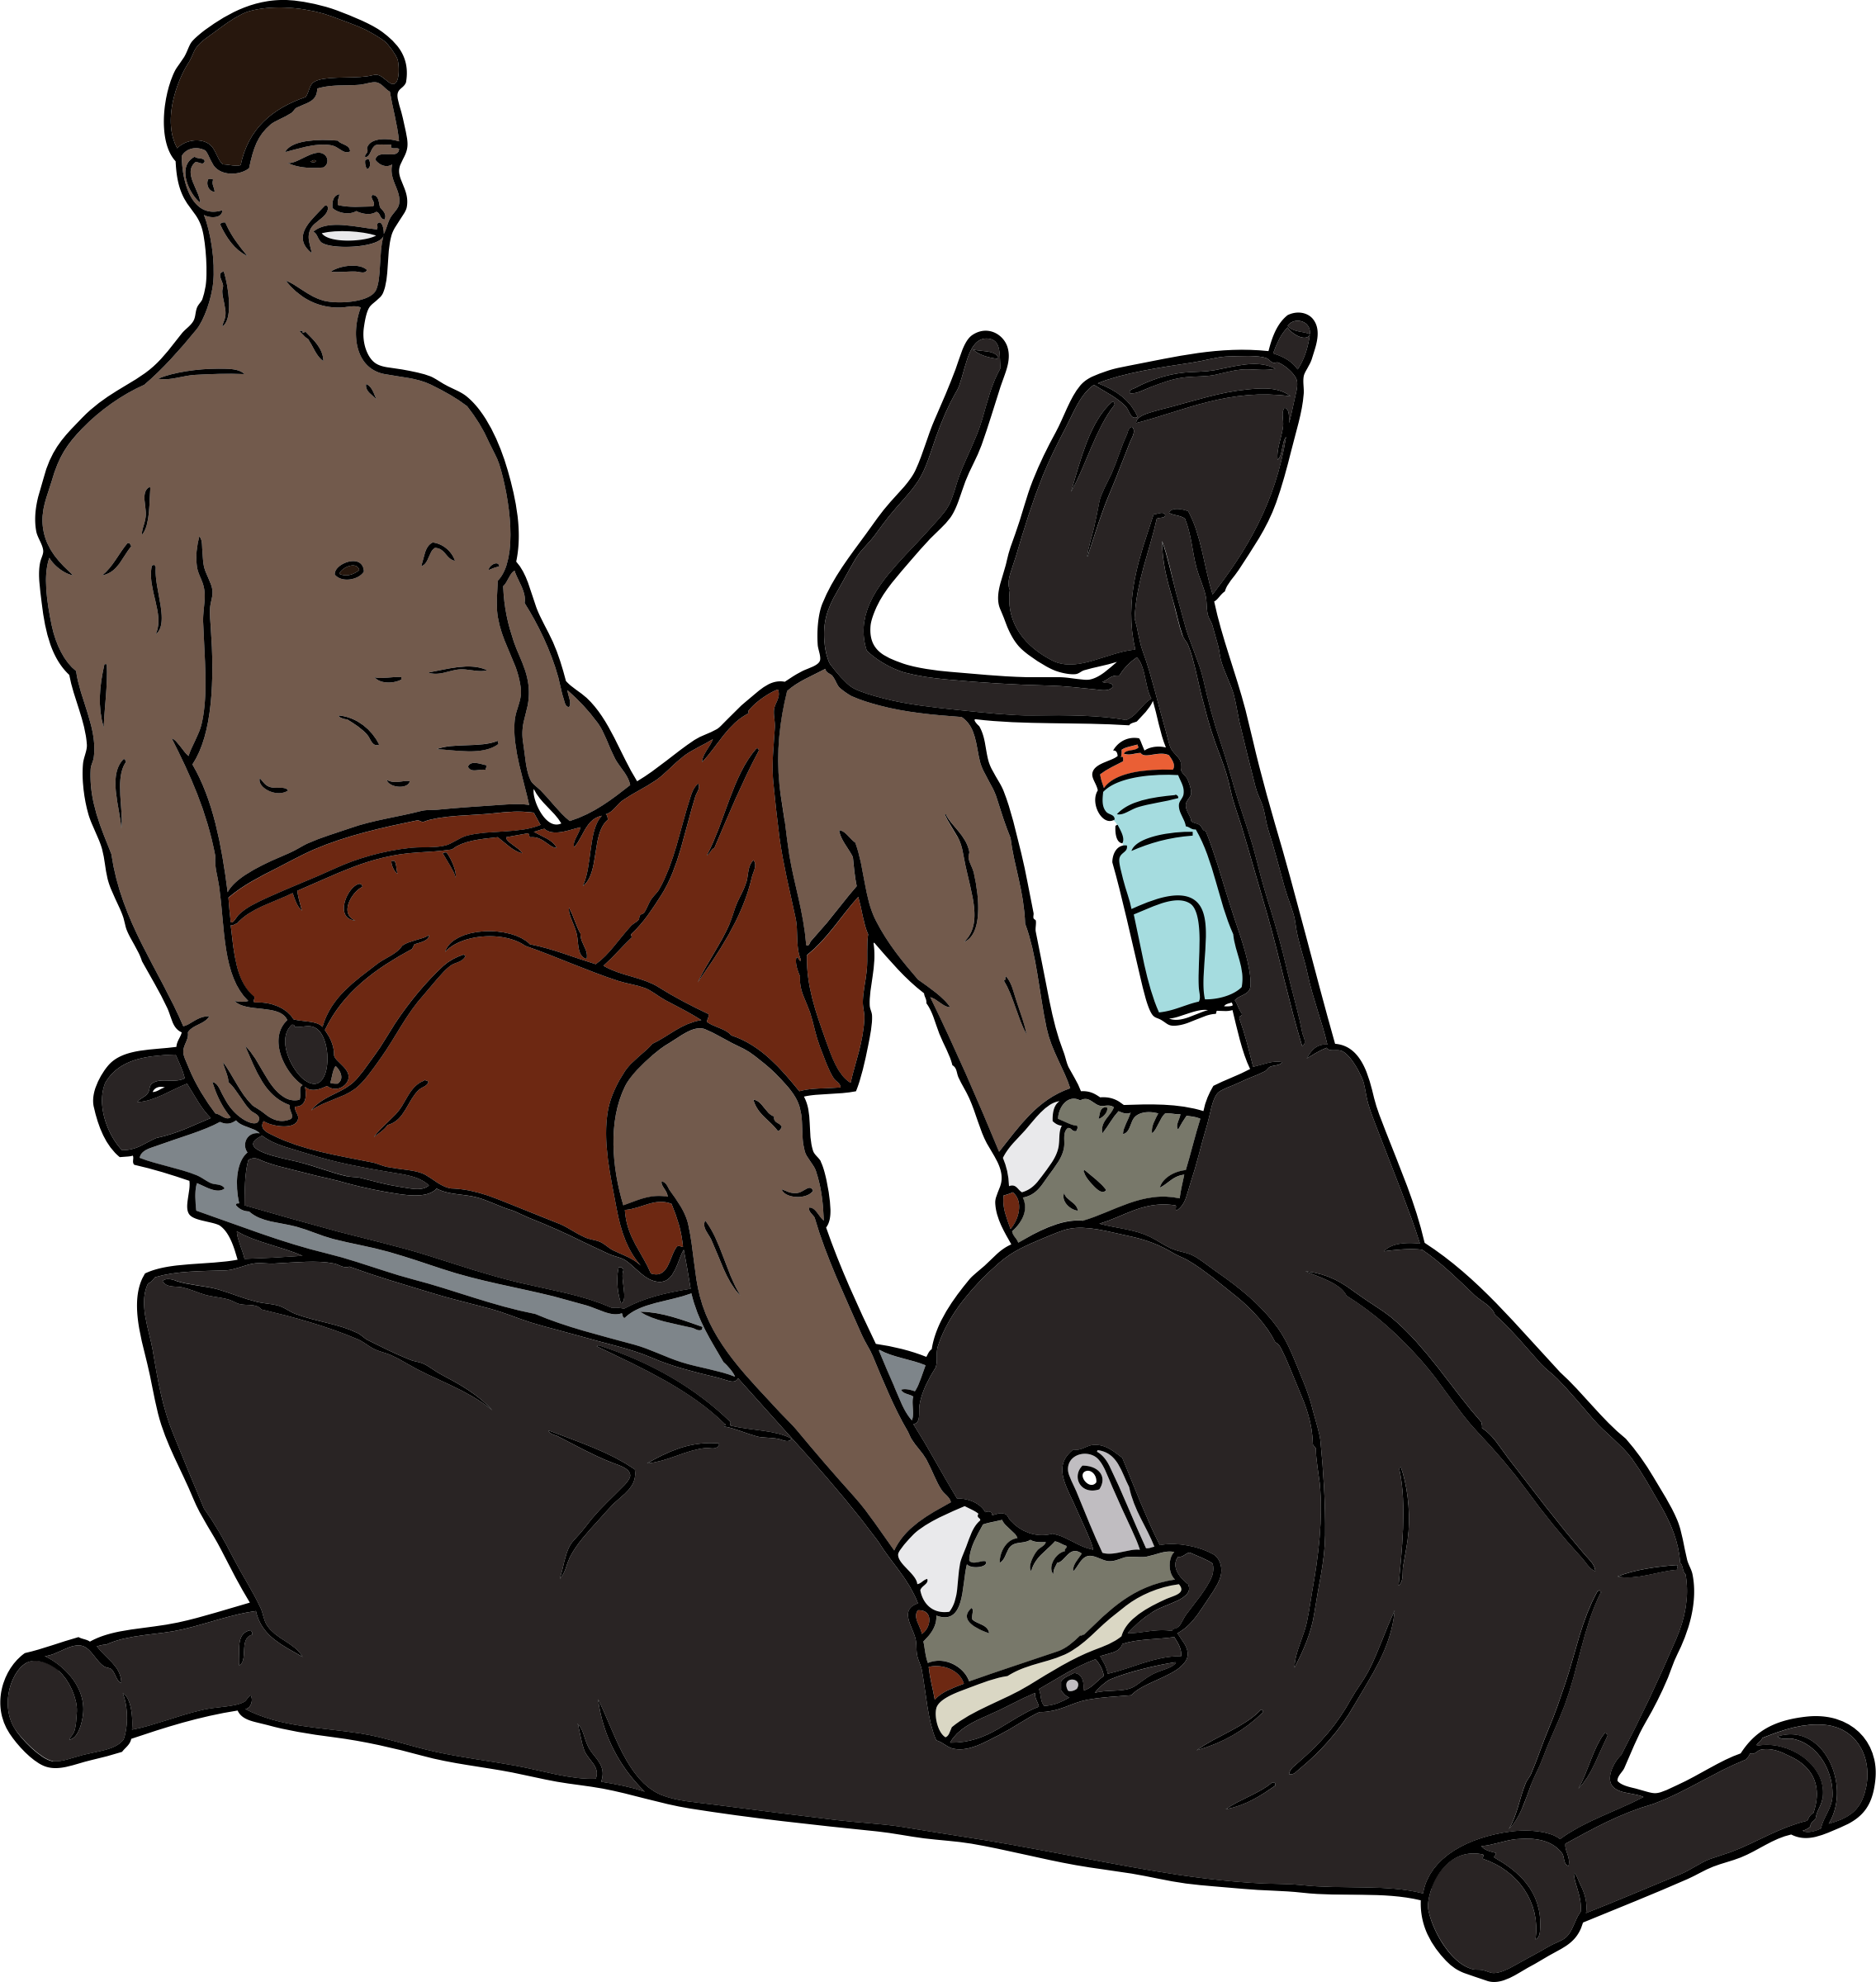 Exercise Bike Man by SteveLambert